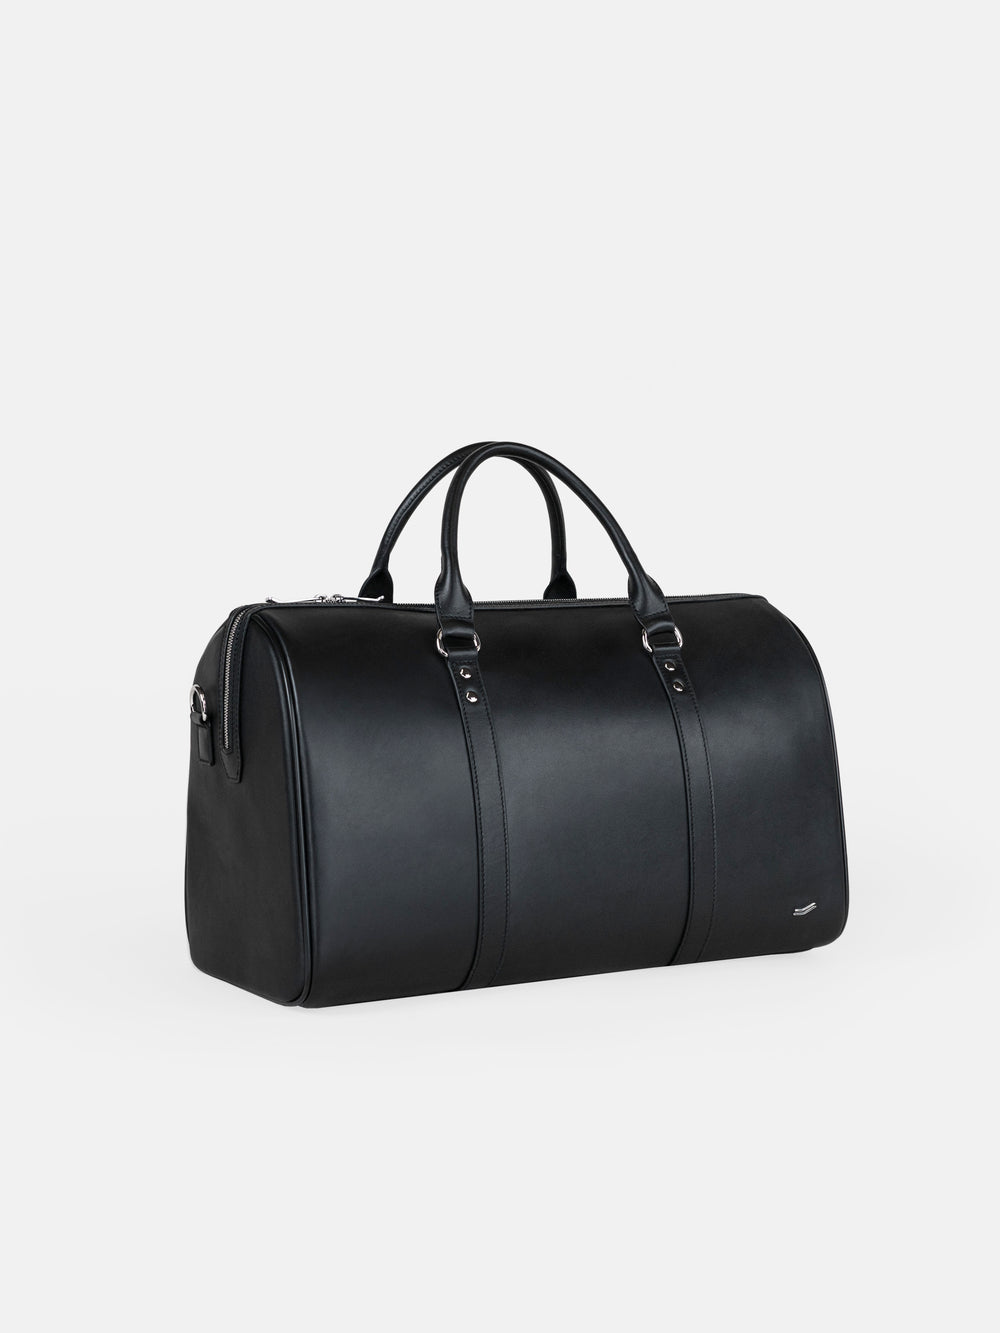 f34 travel duffel bag italian black leather